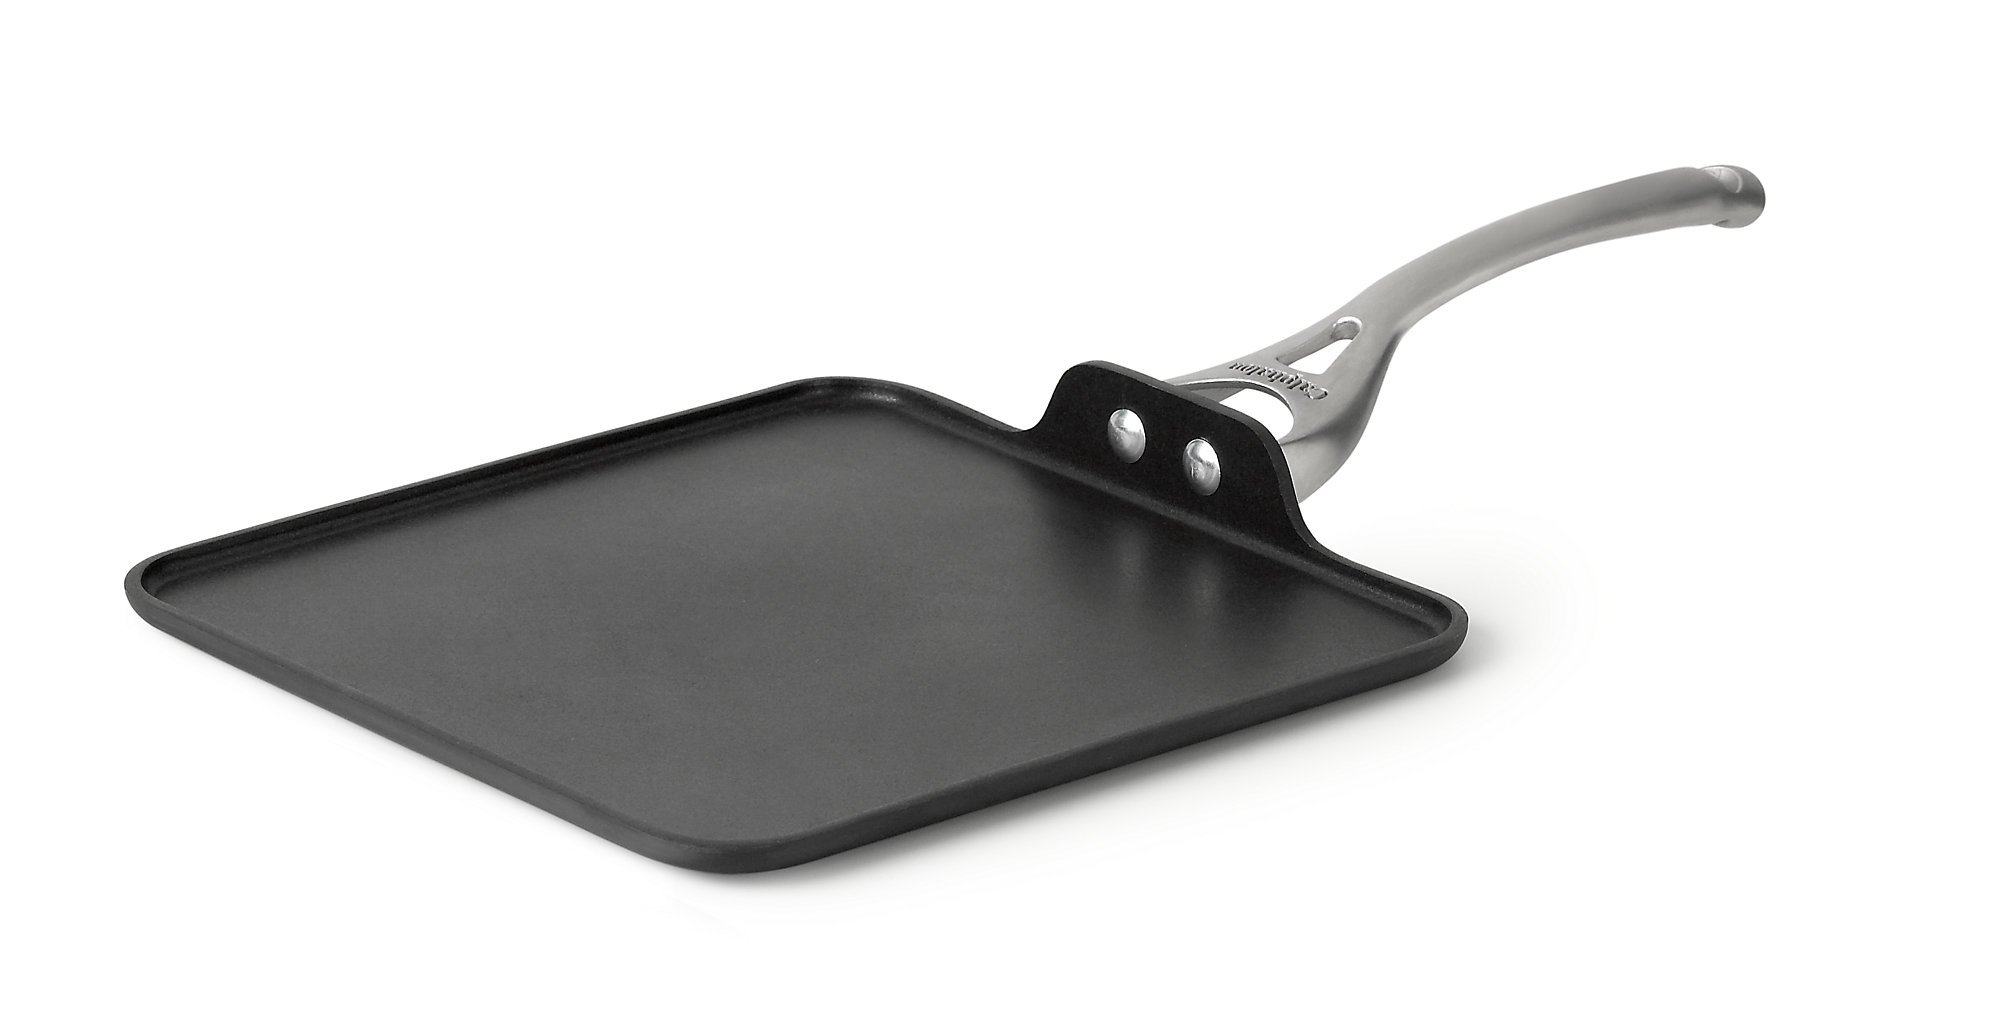 Calphalon Contemporary Hard-Anodized Aluminum Nonstick Cookware, Square Griddle Pan, 11-inch, Black